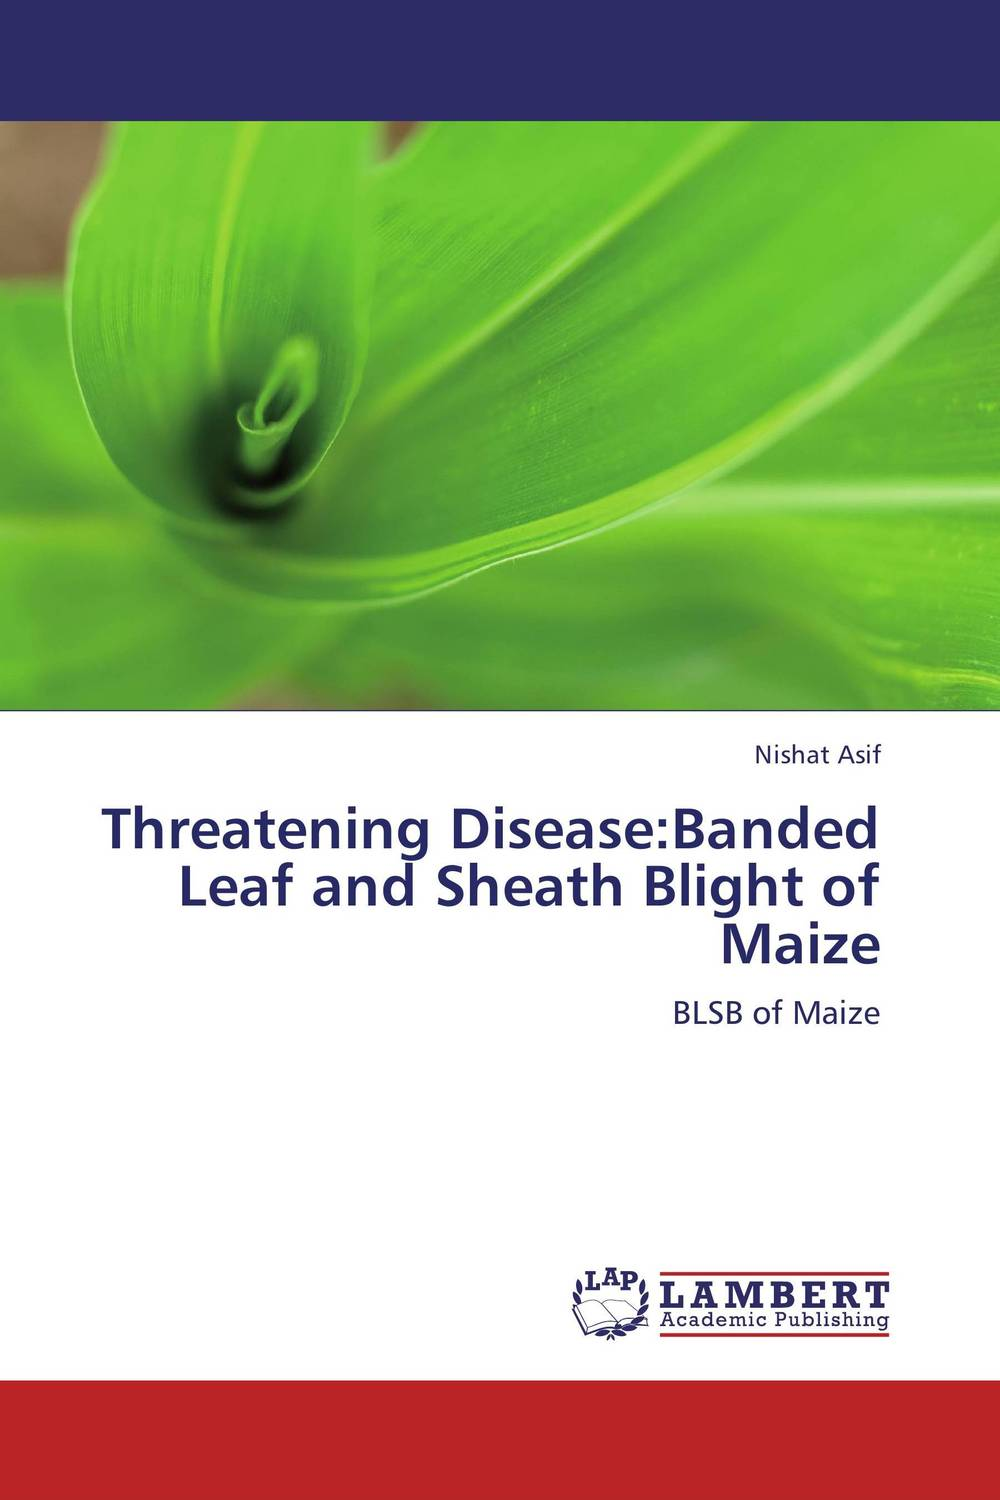 Threatening Disease:Banded Leaf and Sheath Blight of Maize fungicidal management of sheath blight of rice